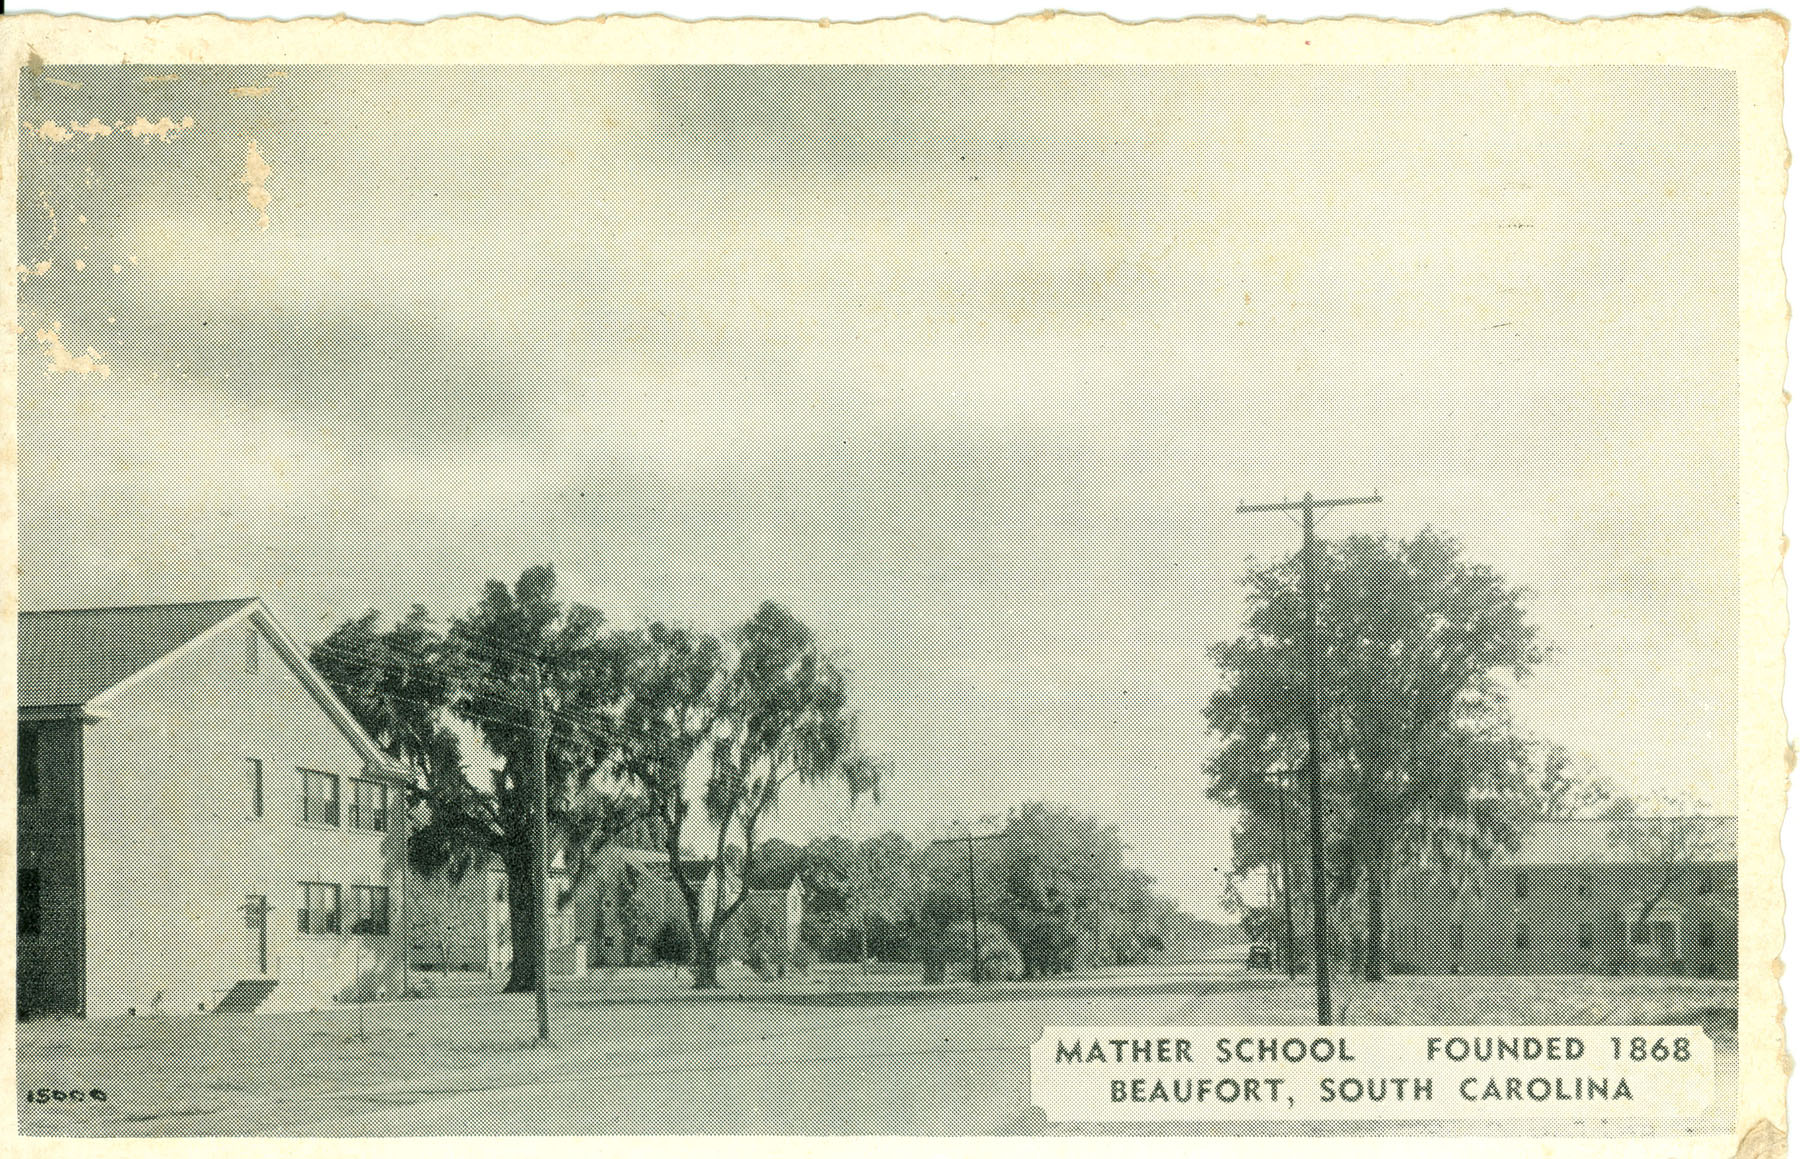 The Mather School